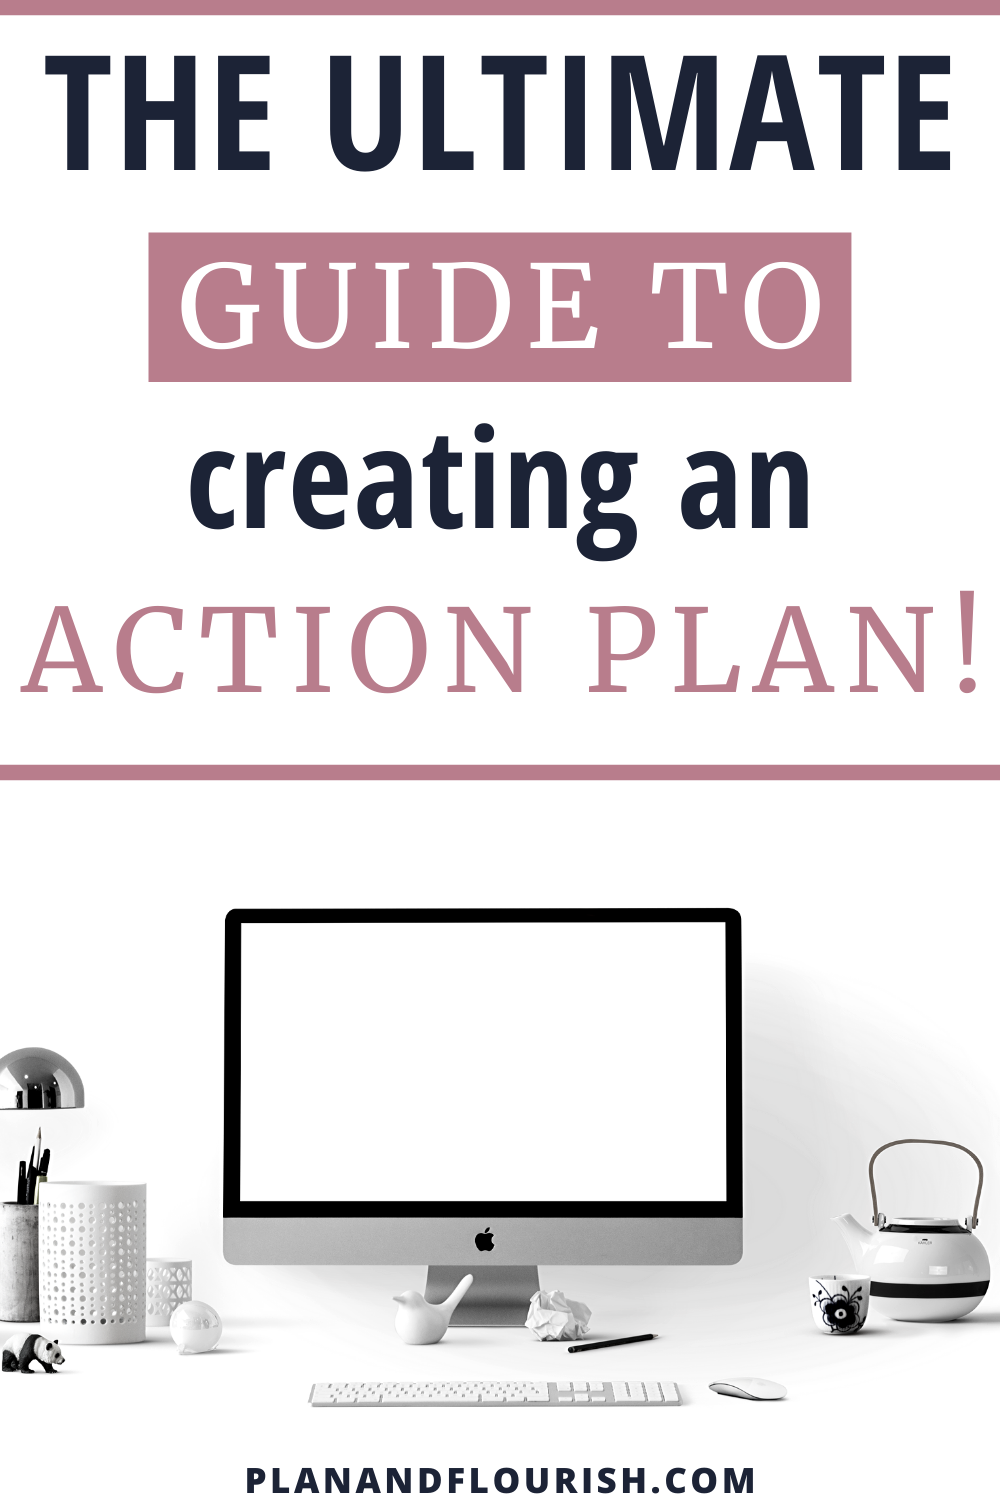 The Ultimate Guide To Creating An Action Plan